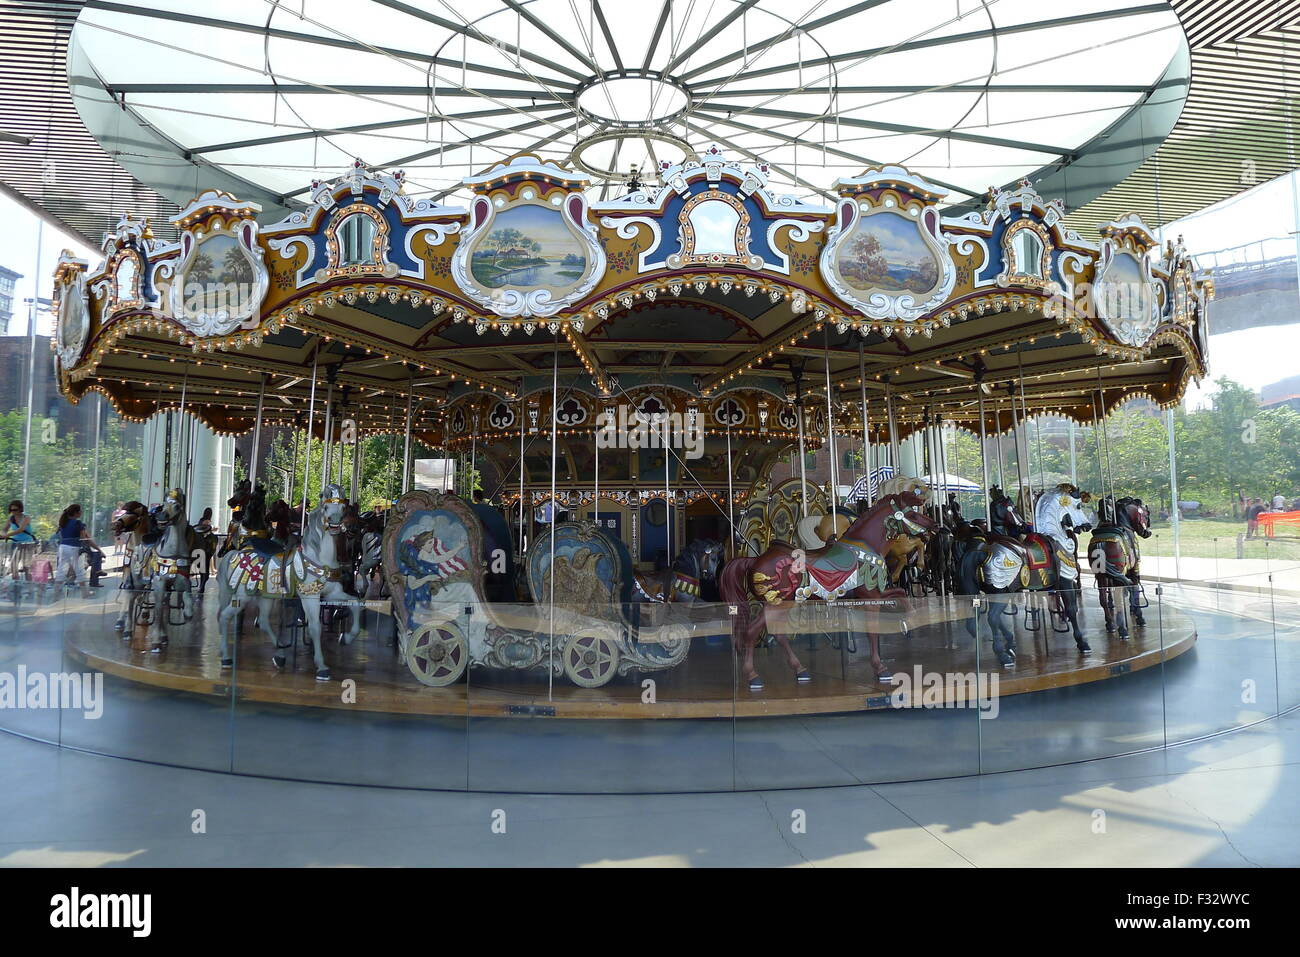 Jane's Carousel at Dumbo, Brooklyn, NY - Stock Image